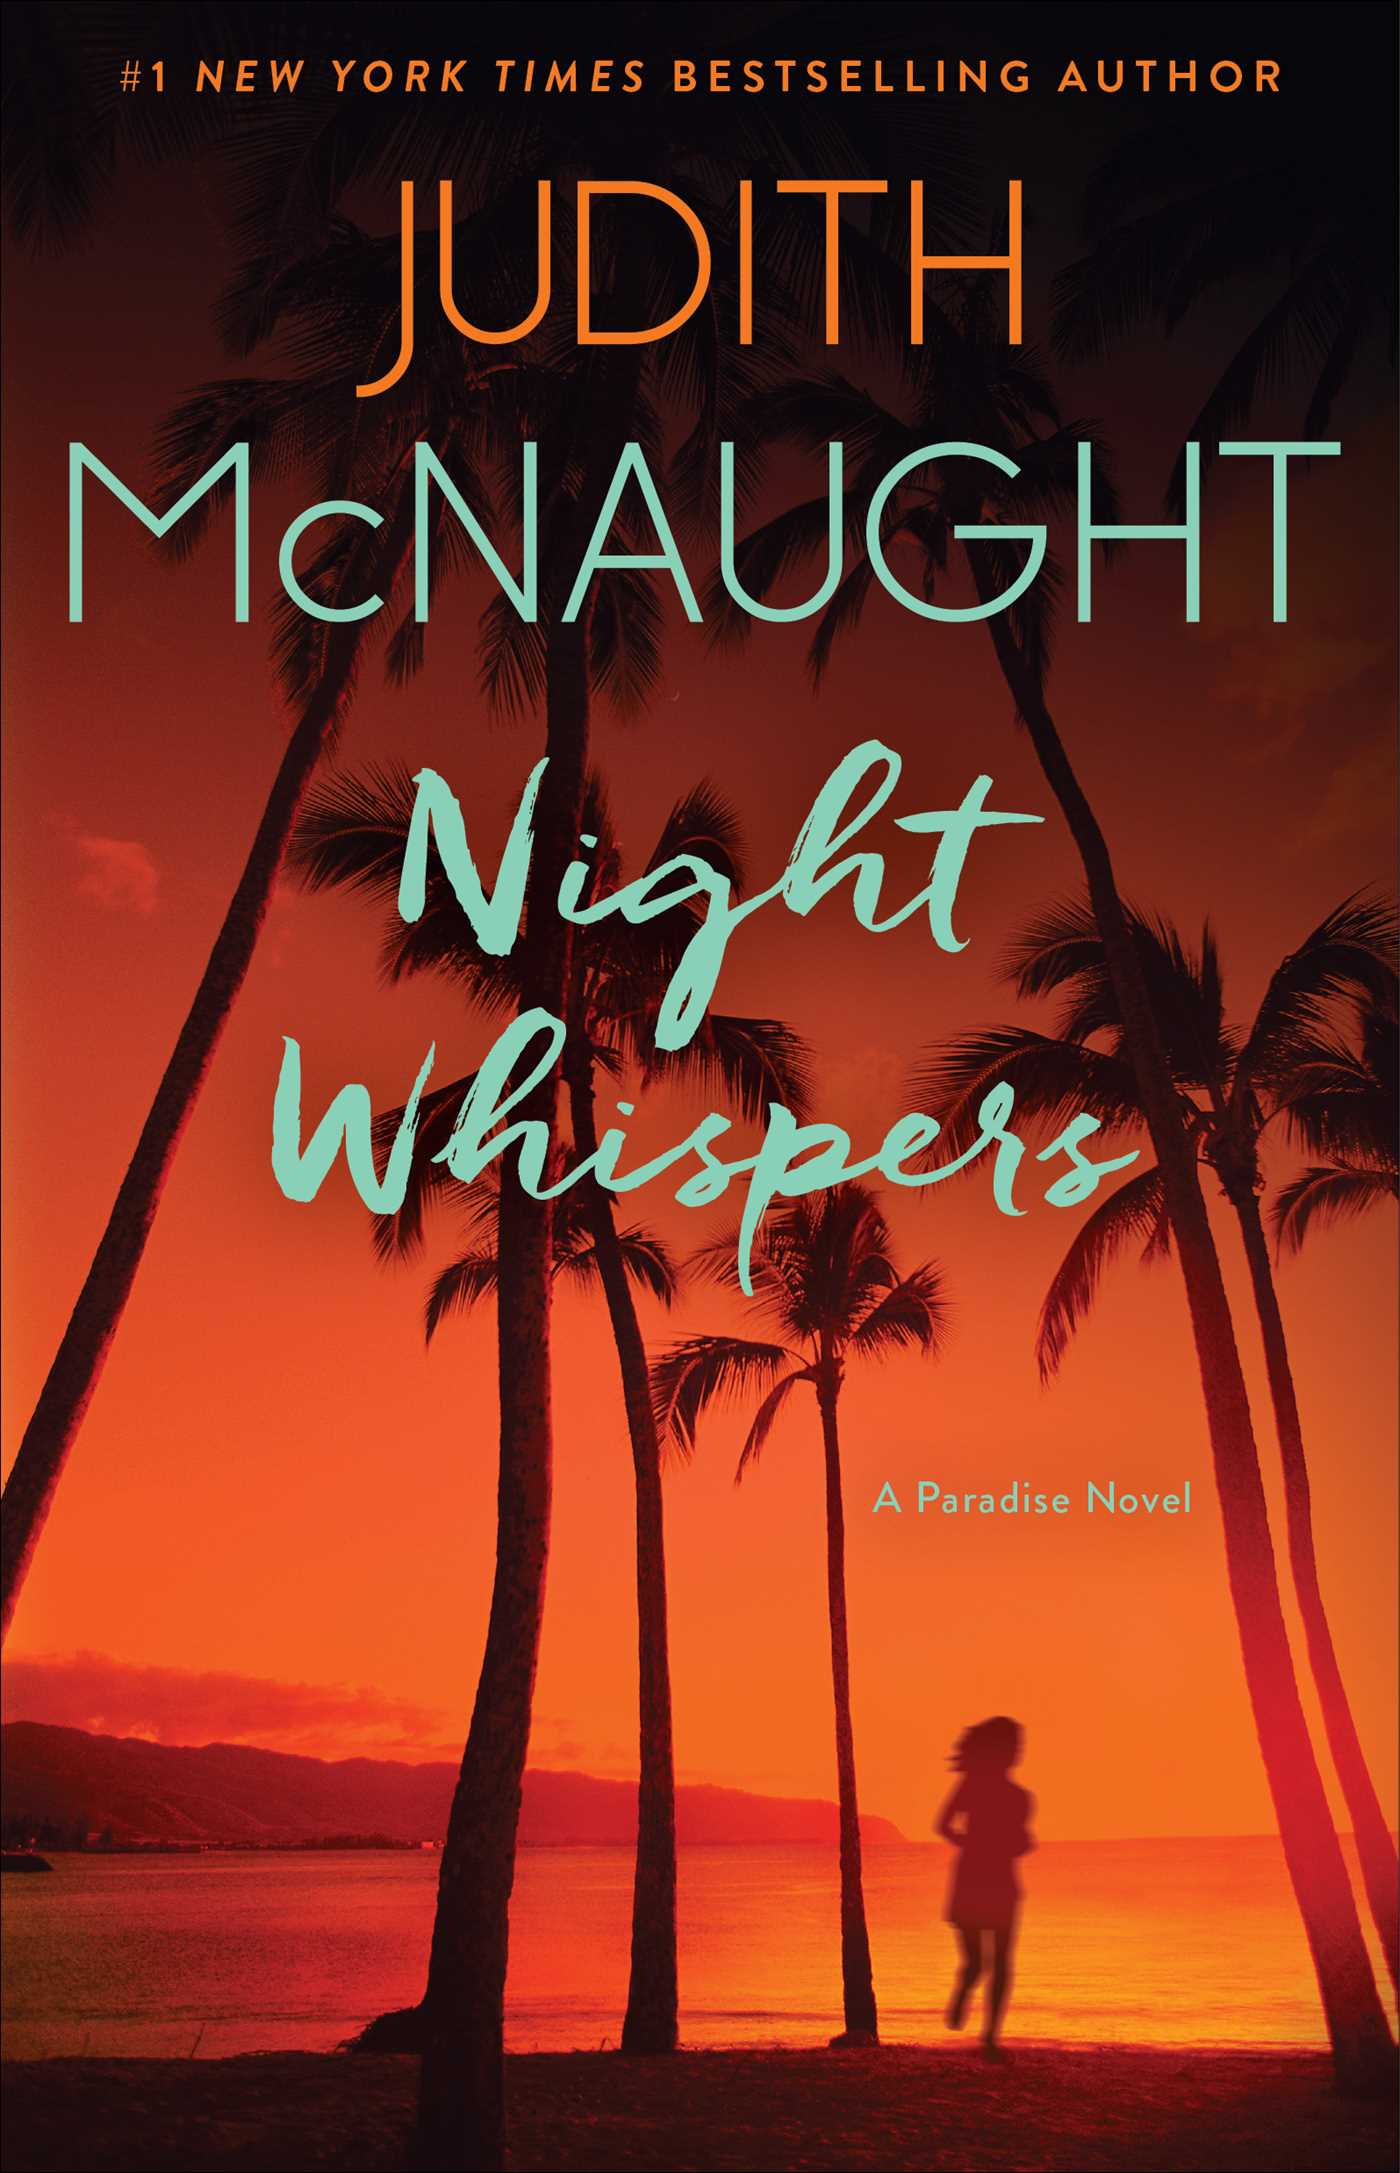 Night whispers 9781439140833 hr